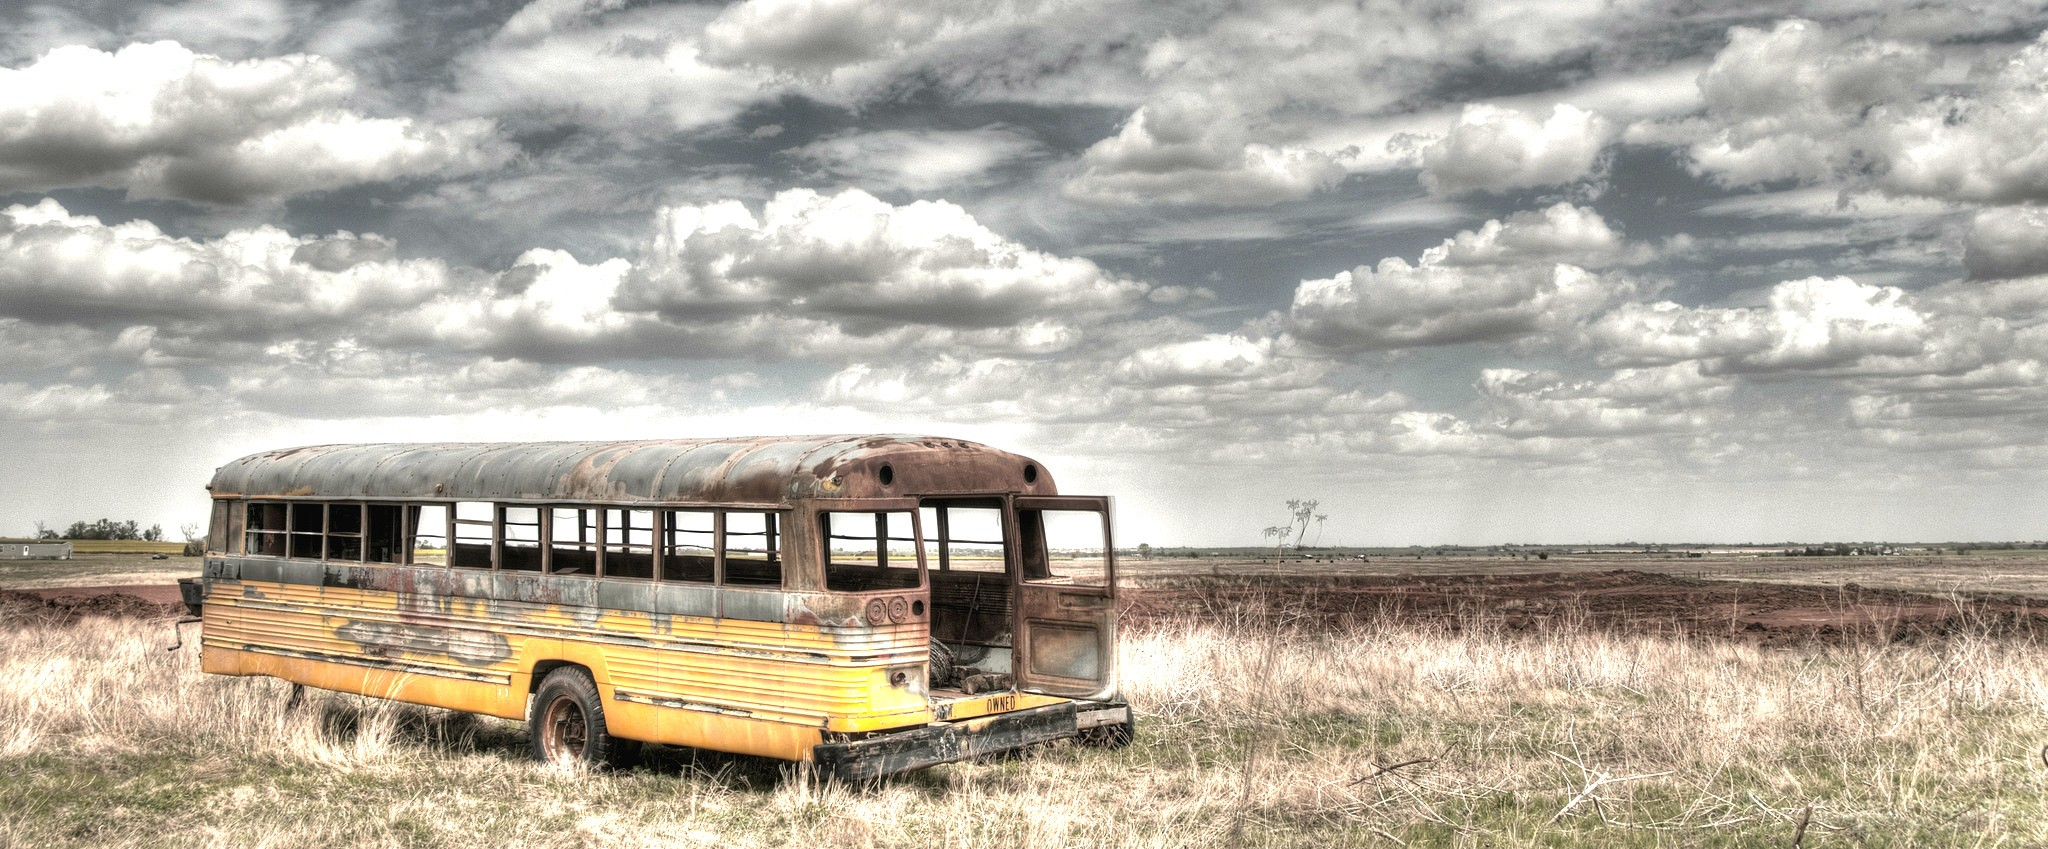 This bus is 'way out in the country by Douglas, OK.... nothing but the Oklahoma wind and the sound of the door swaying. (Flickr photo by mtneer_man https://creativecommons.org/licenses/by-nd/2.0/)